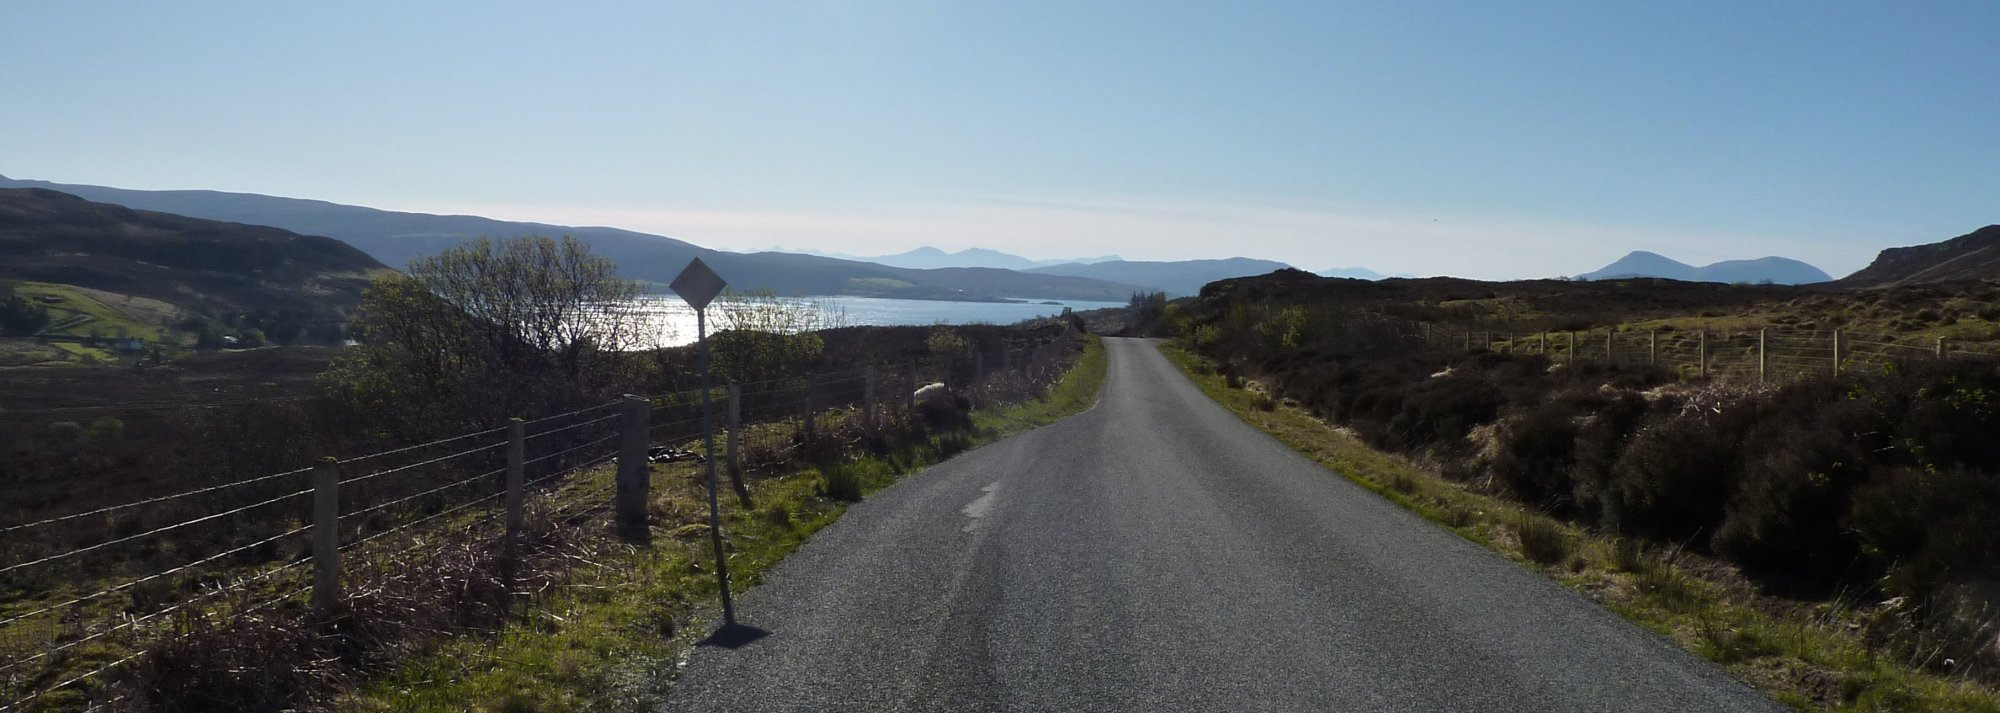 Although it's road walking, this road is lovely - very quiet and with splendid views all round